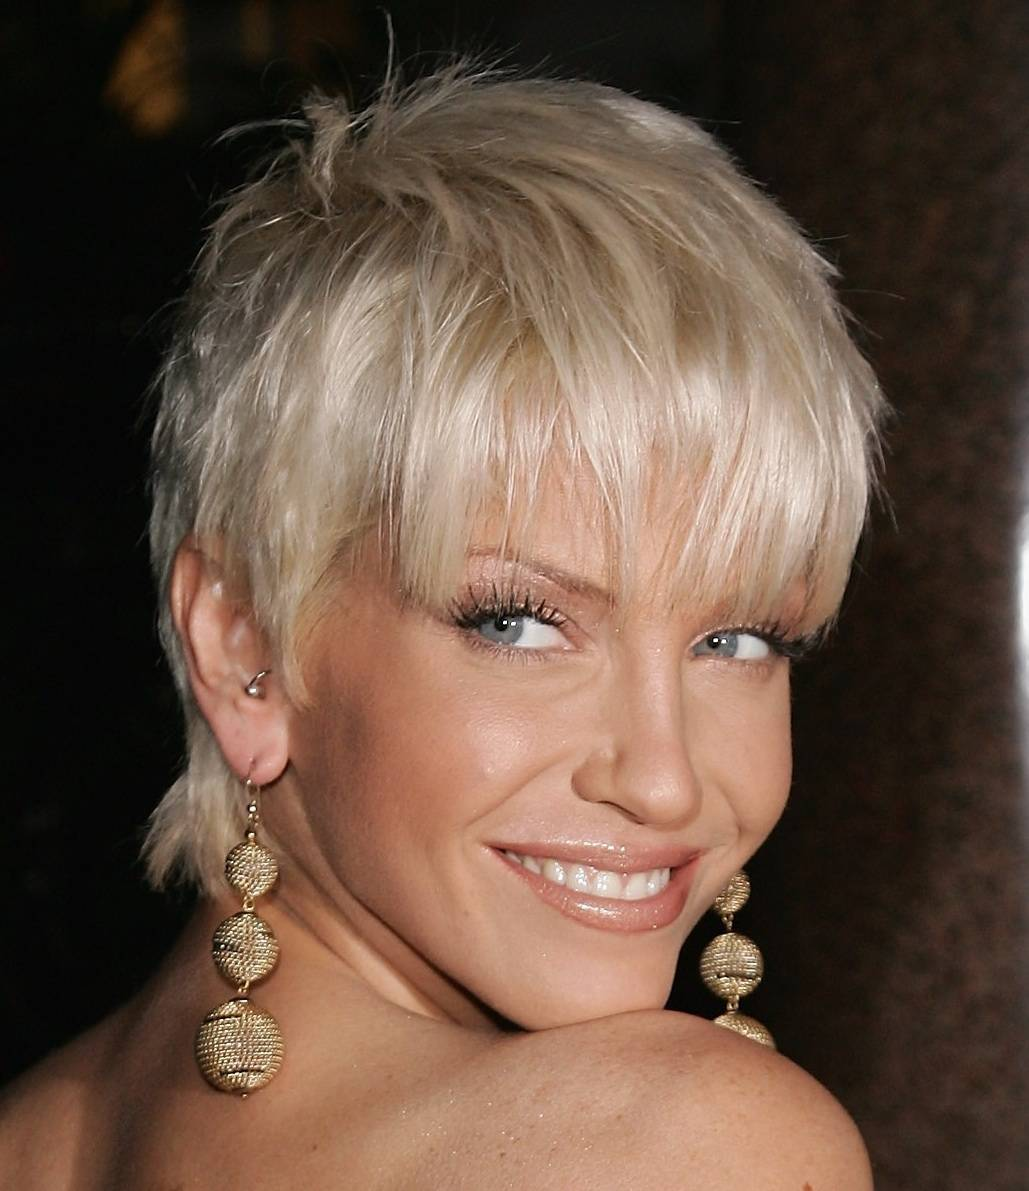 hairstyles for short hair women |Daily Pictures Online wallapers ...